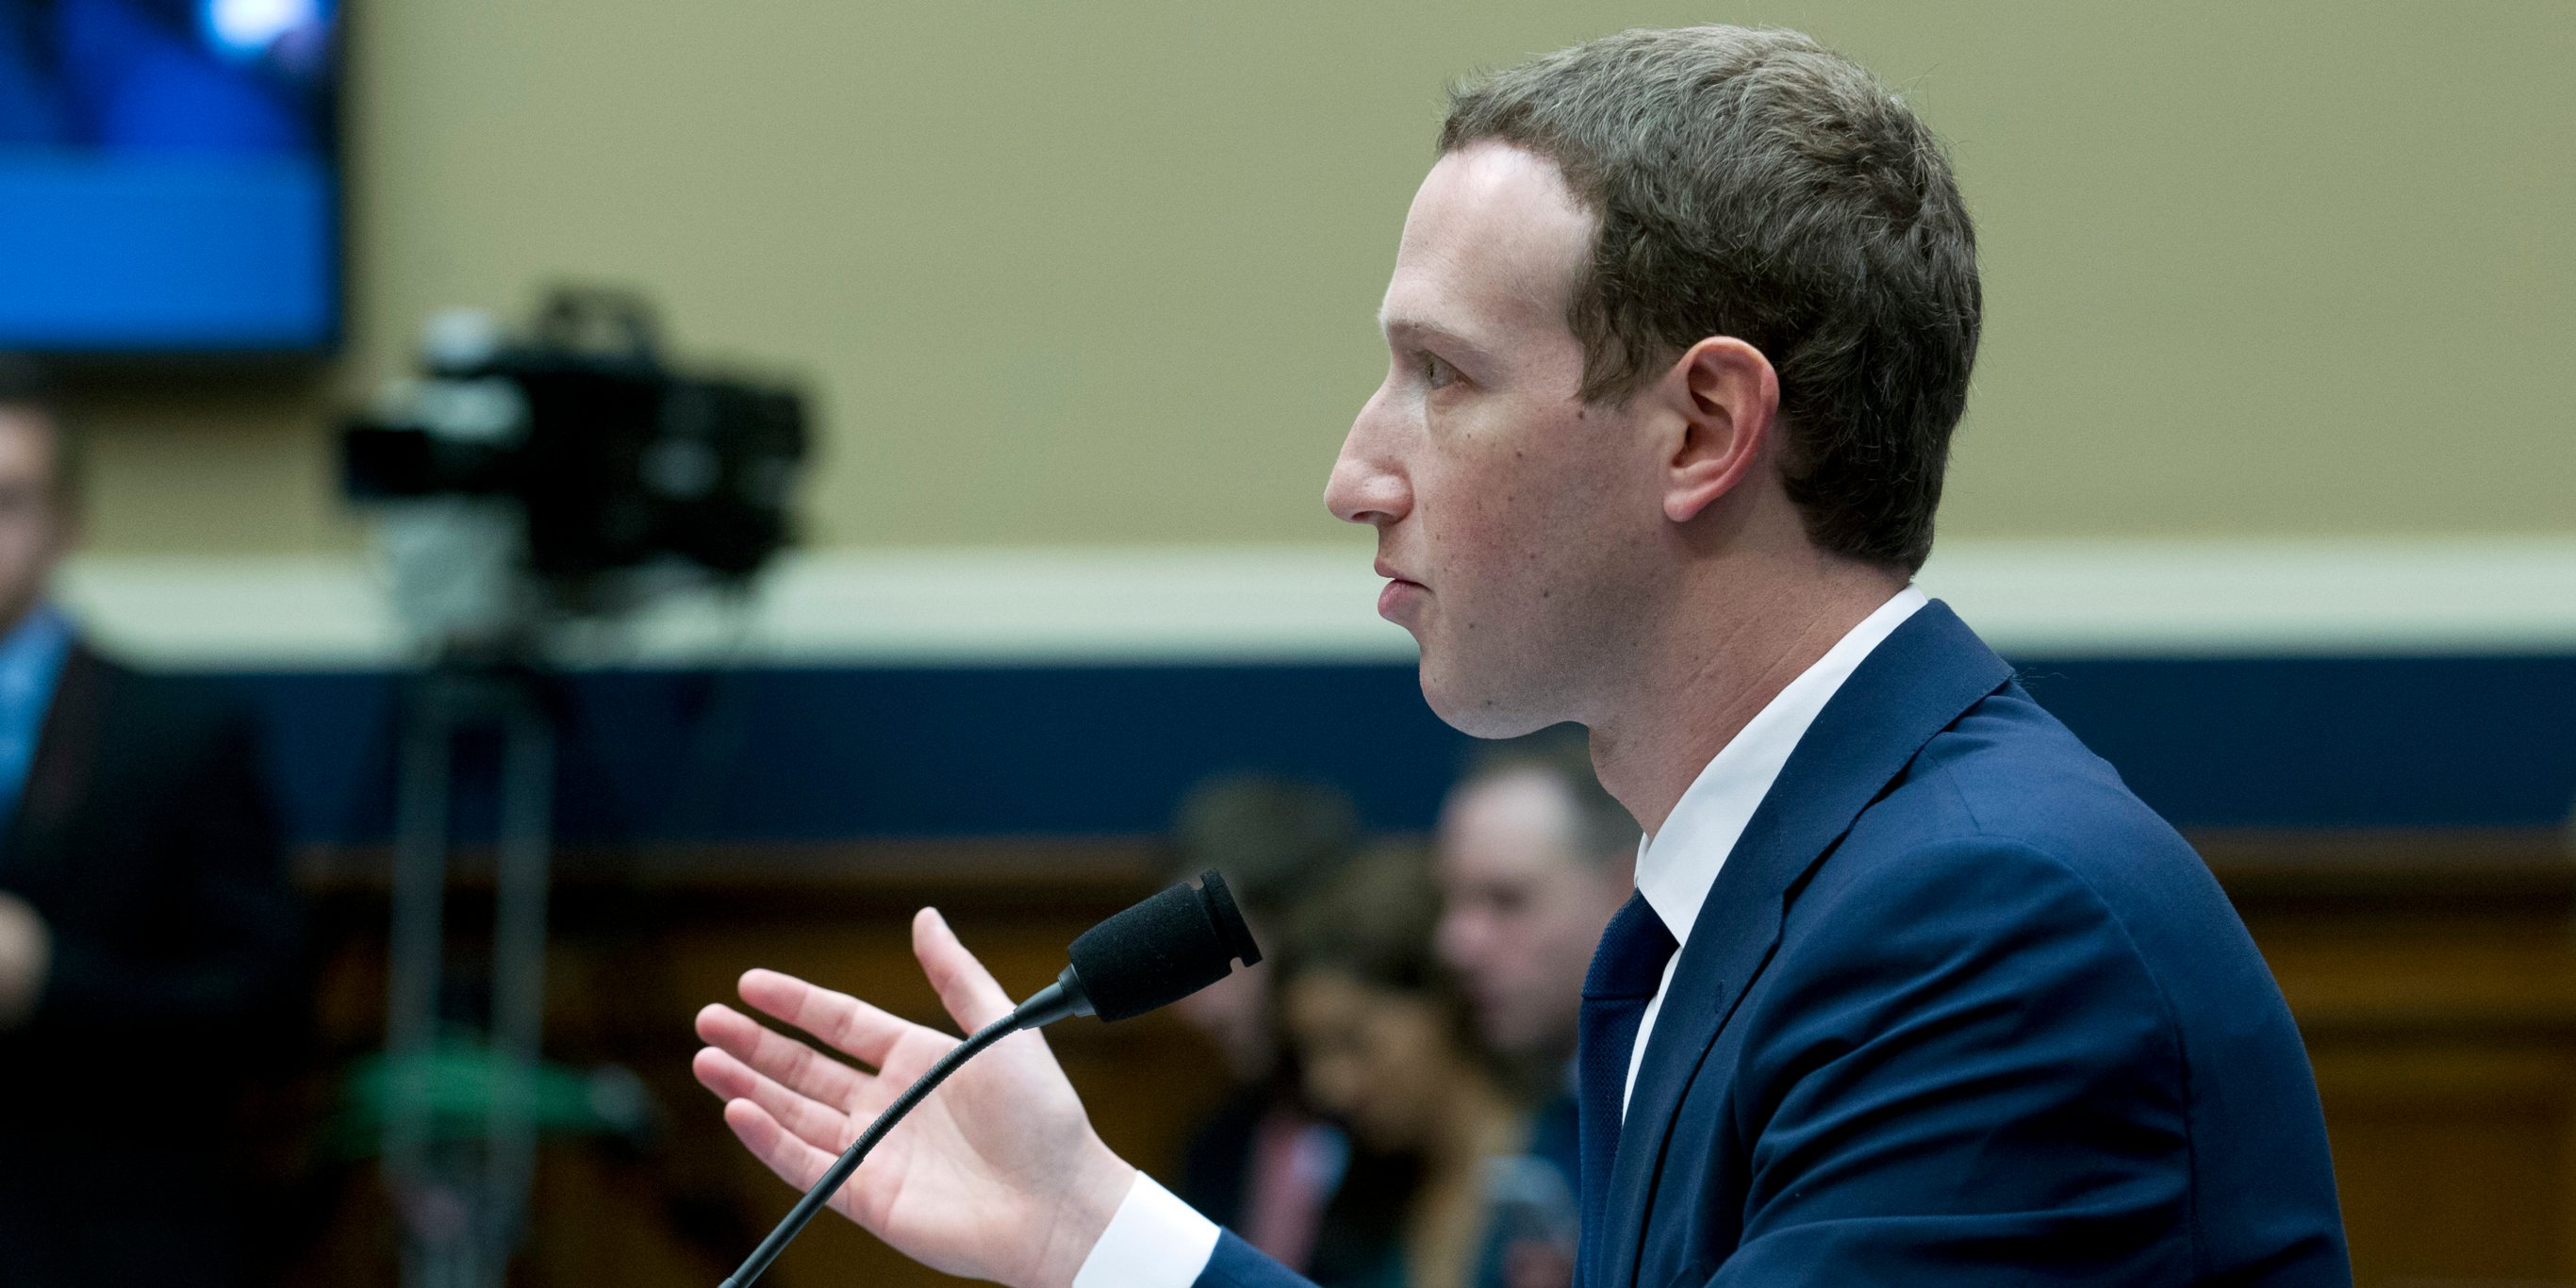 Facebook reveals new details about its plan to build a supreme court to oversee content moderation on its platform (FB)